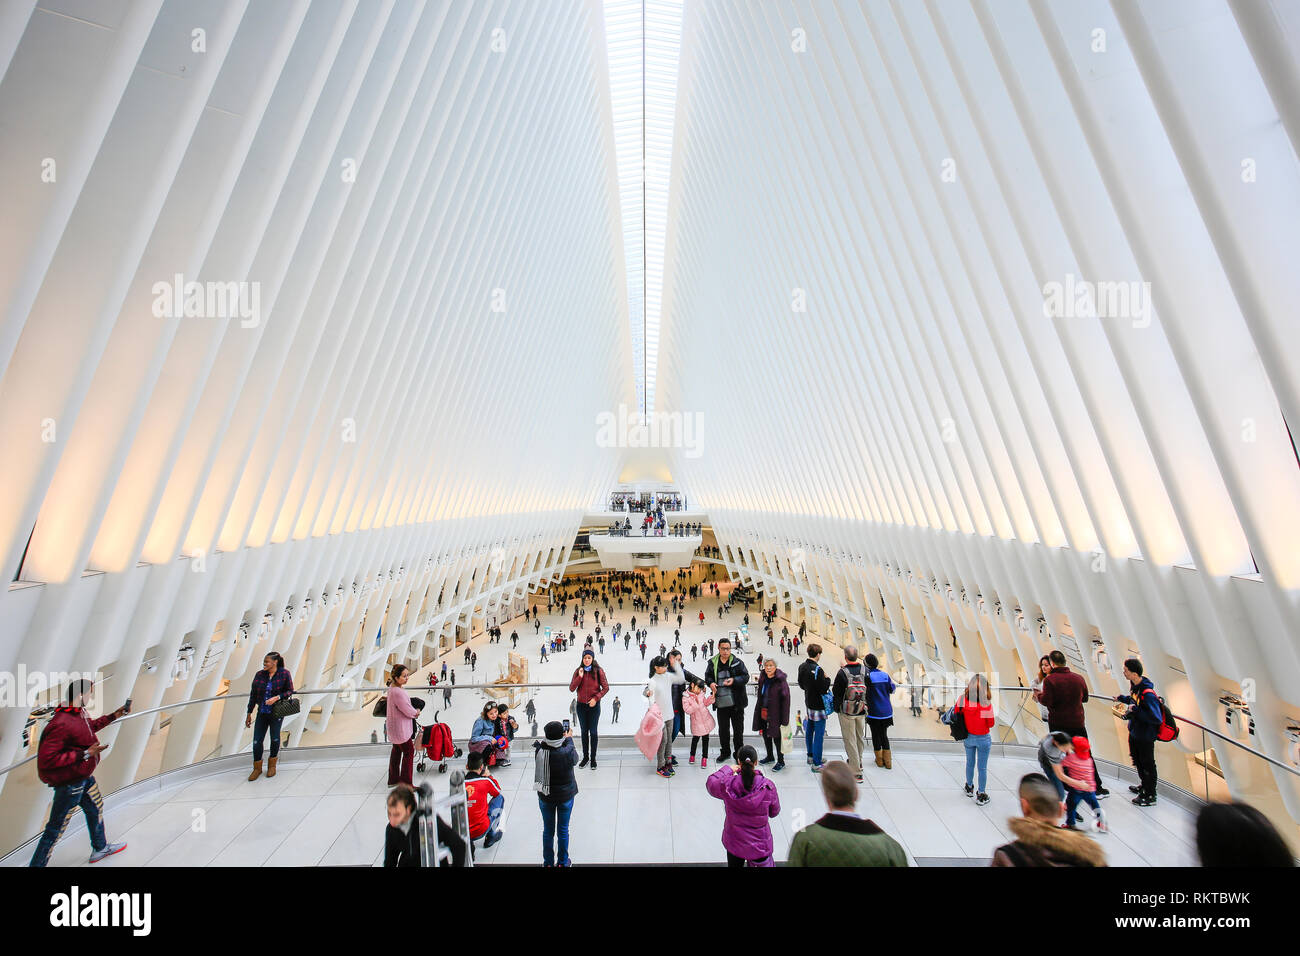 New York City, New York, United States of America - People in the Oculus, main hall of the subway station with shopping mall, World Trade Center, Tran Stock Photo